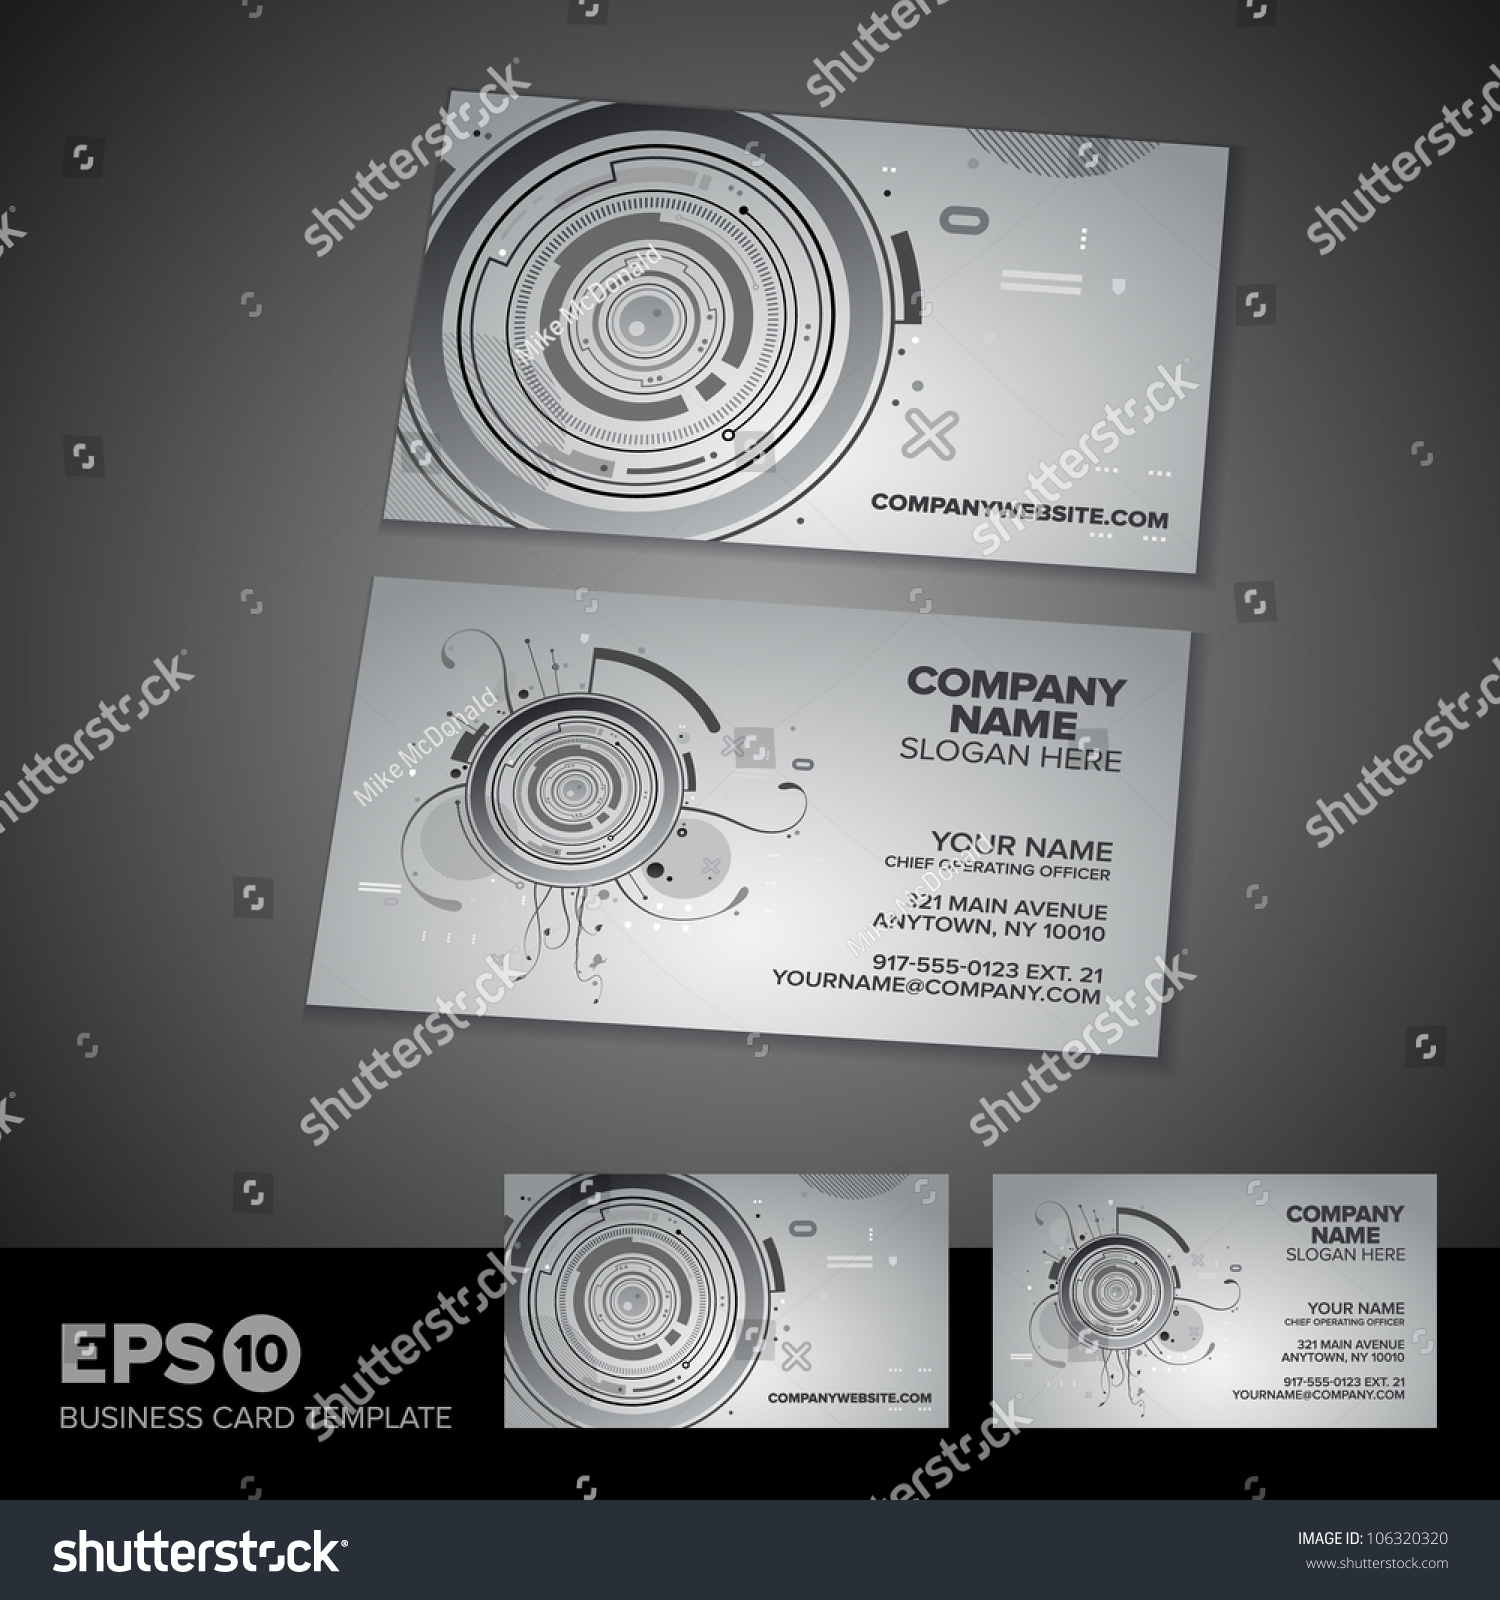 tech business card - Kardas.klmphotography.co